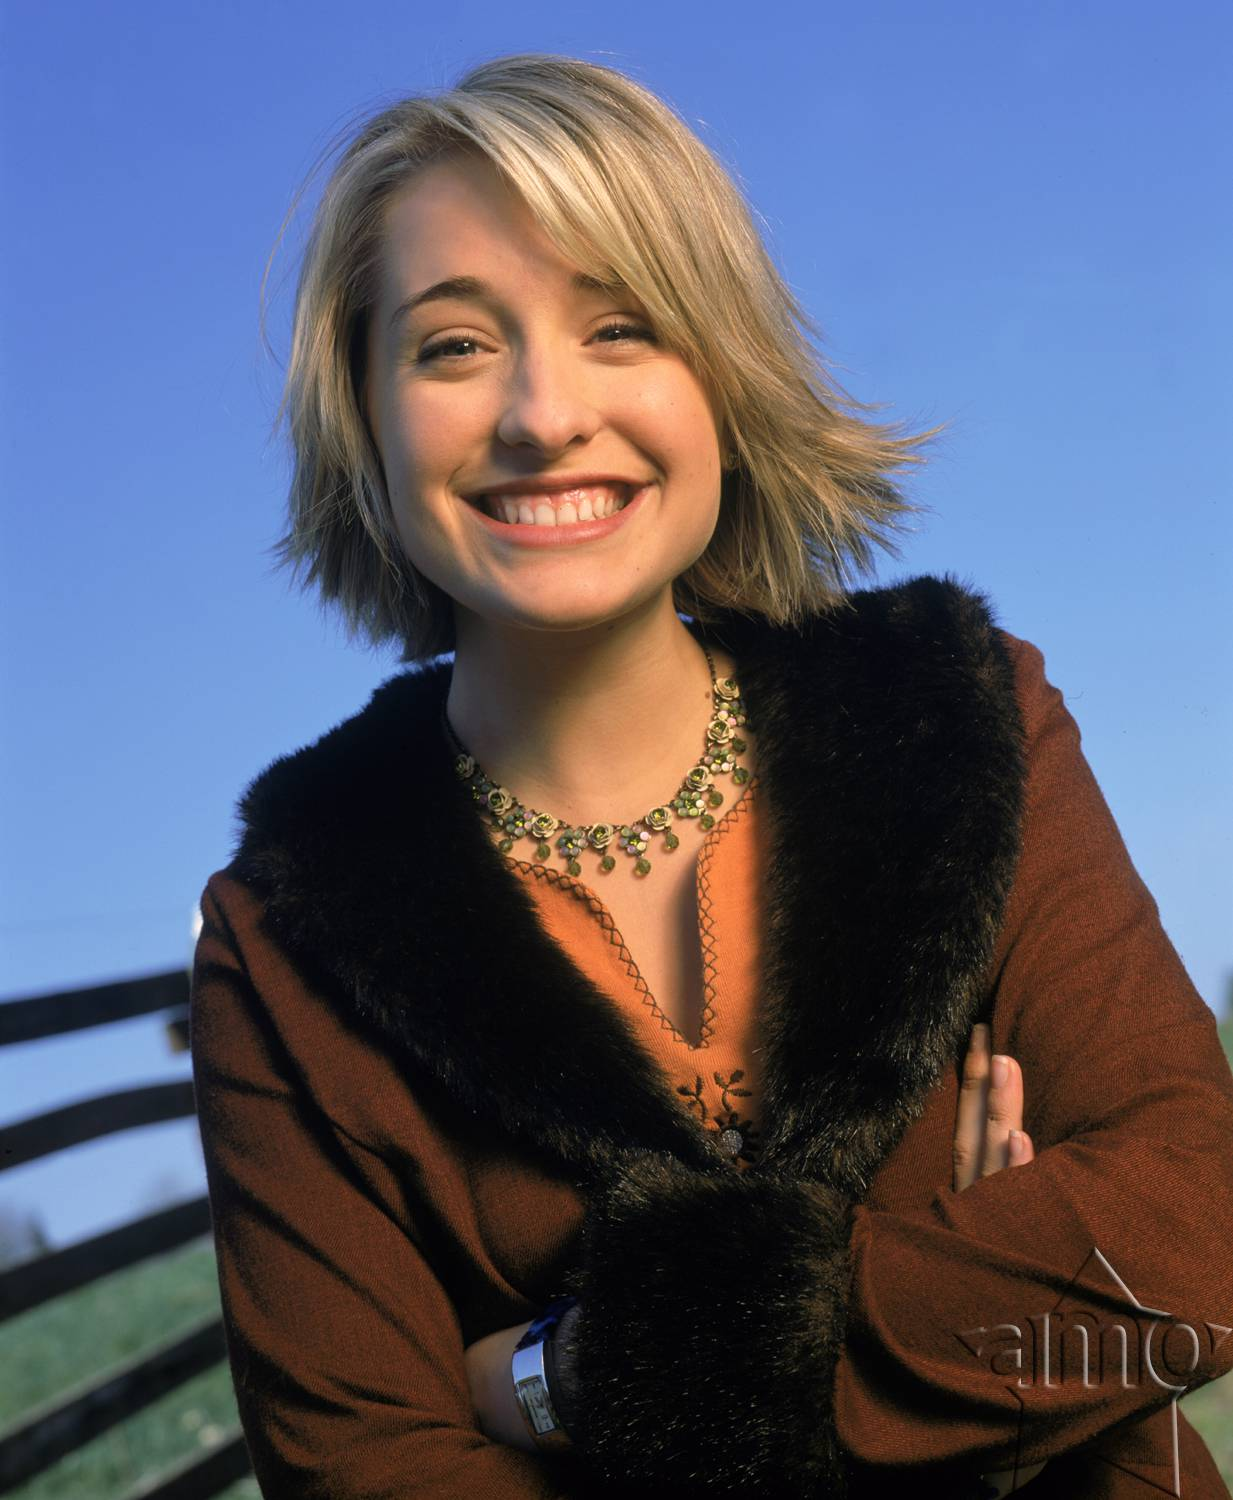 bra Hot Allison Mack naked photo 2017